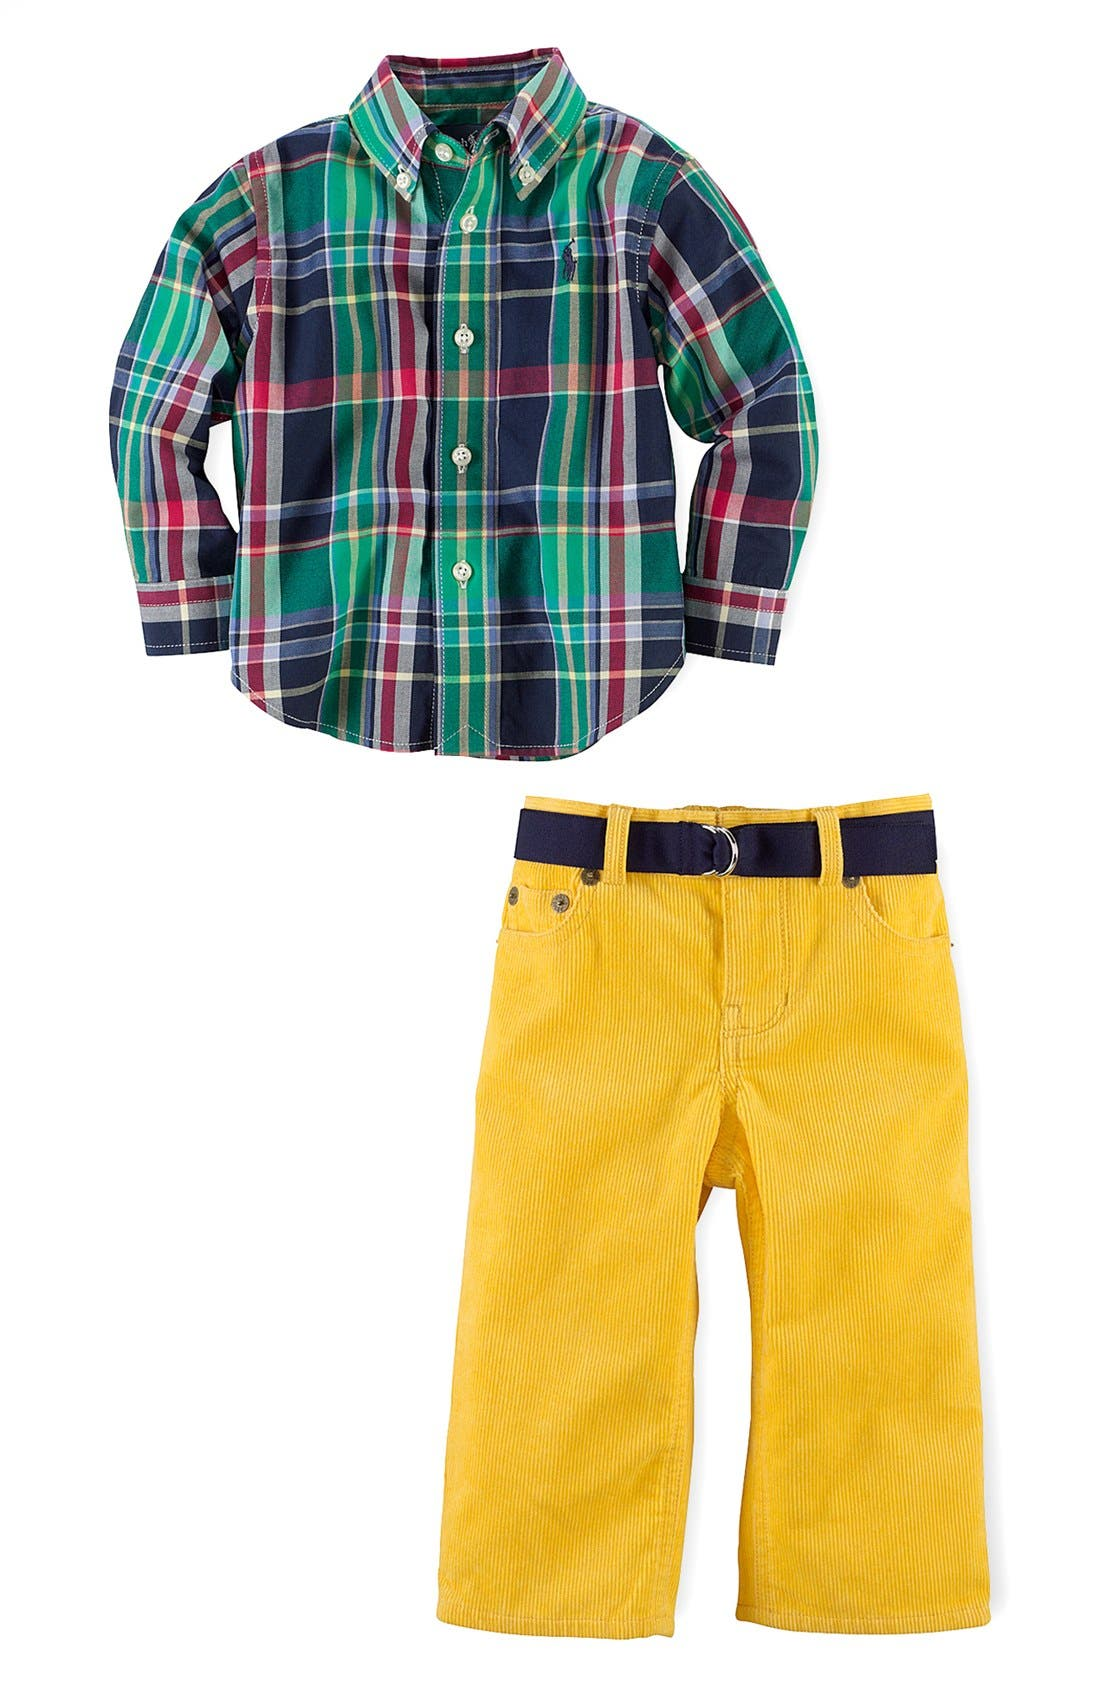 Alternate Image 2  - Ralph Lauren Shirt & Pants (Baby Boys)